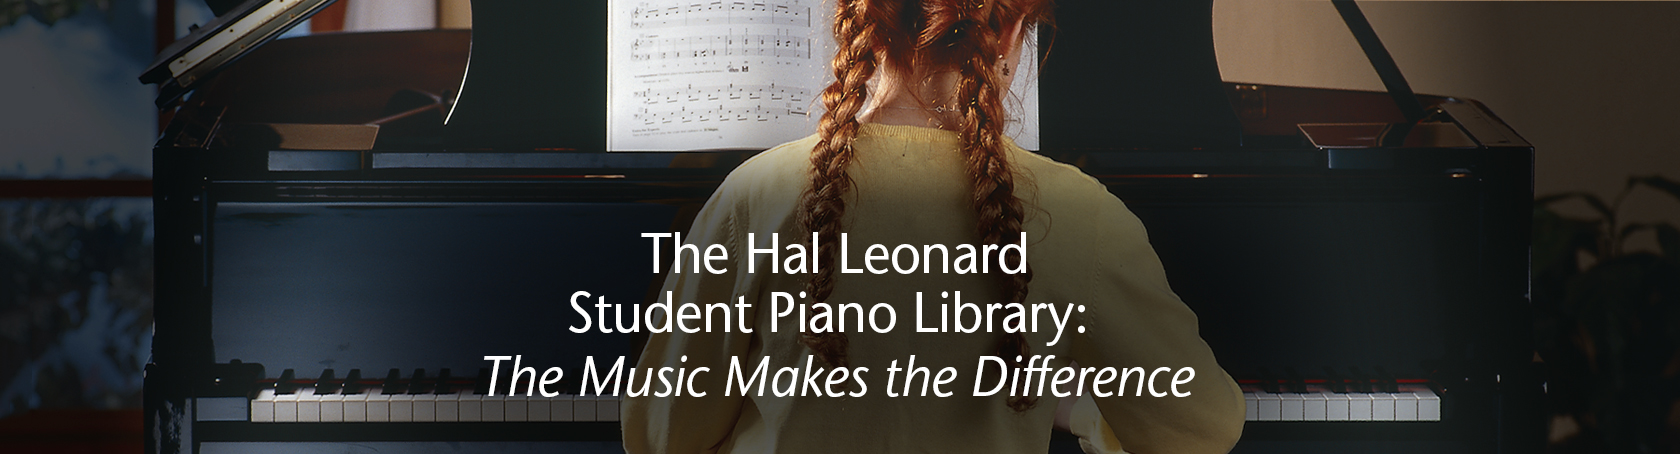 HLSPL - The Hal Leonard Student Piano Library